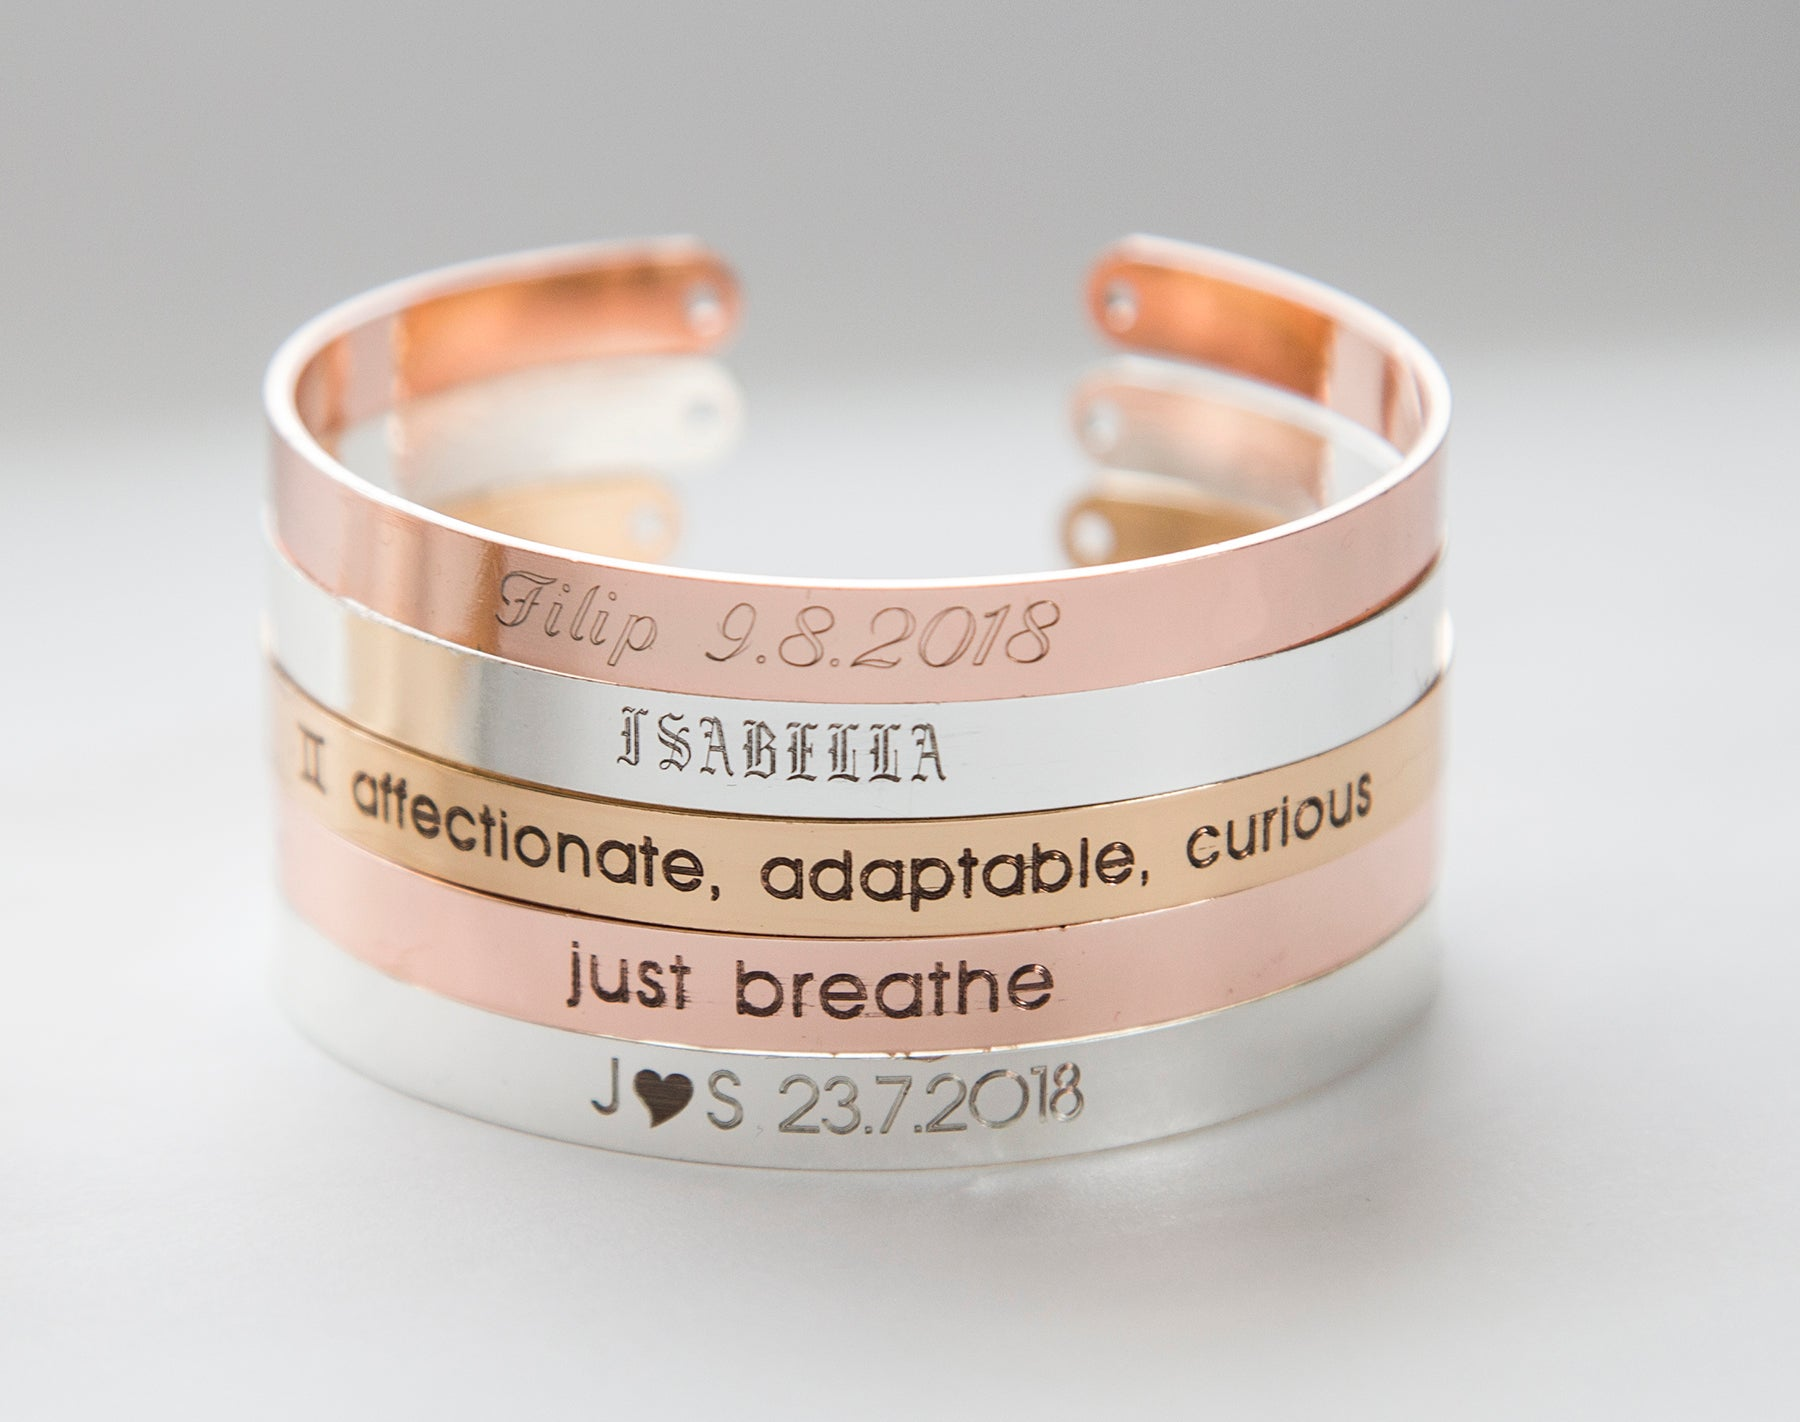 Adjustable size cuff bracelet - custom engraving, gold, rose gold, silver finish